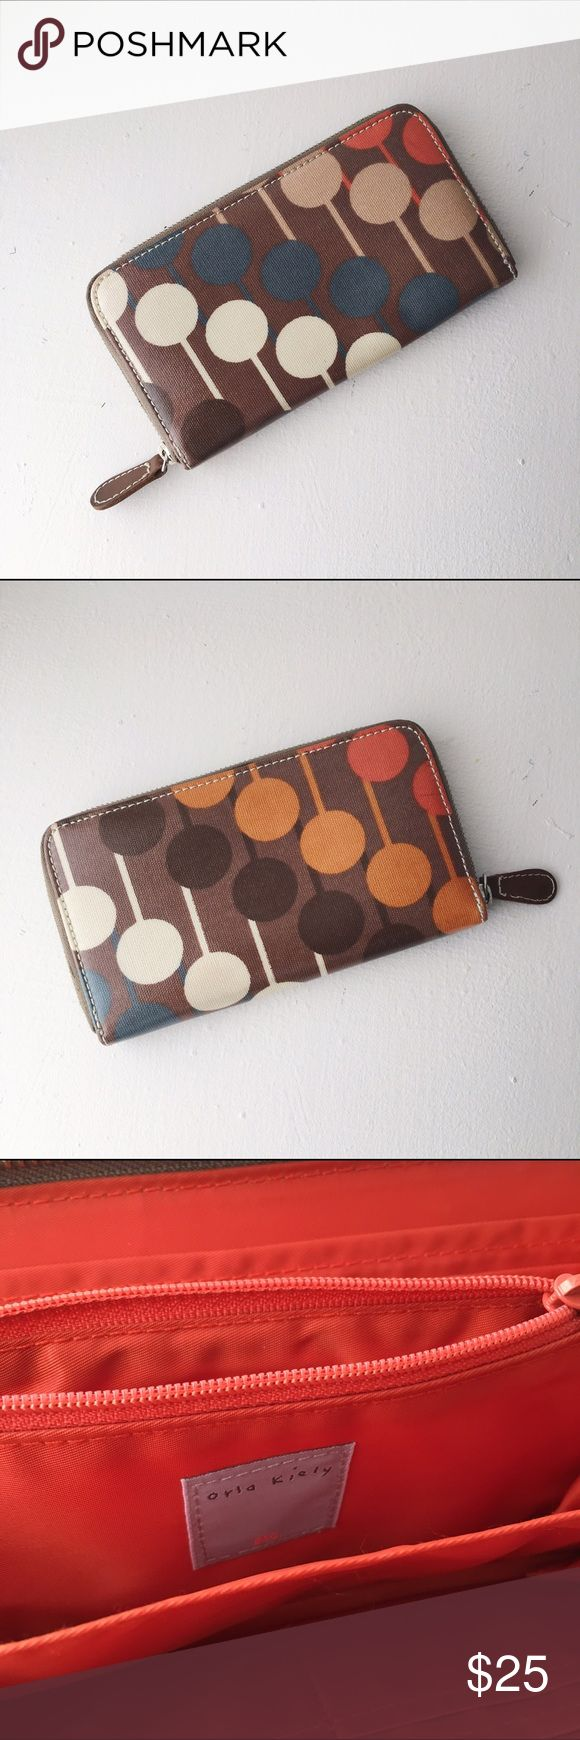 Orla Kiely Wallet Orla Kiely oil cloth printed wallet. In excellent used condition.  Shows some minor dirt in the change purse pocket.  Used very gently. Orla Kiely Bags Wallets